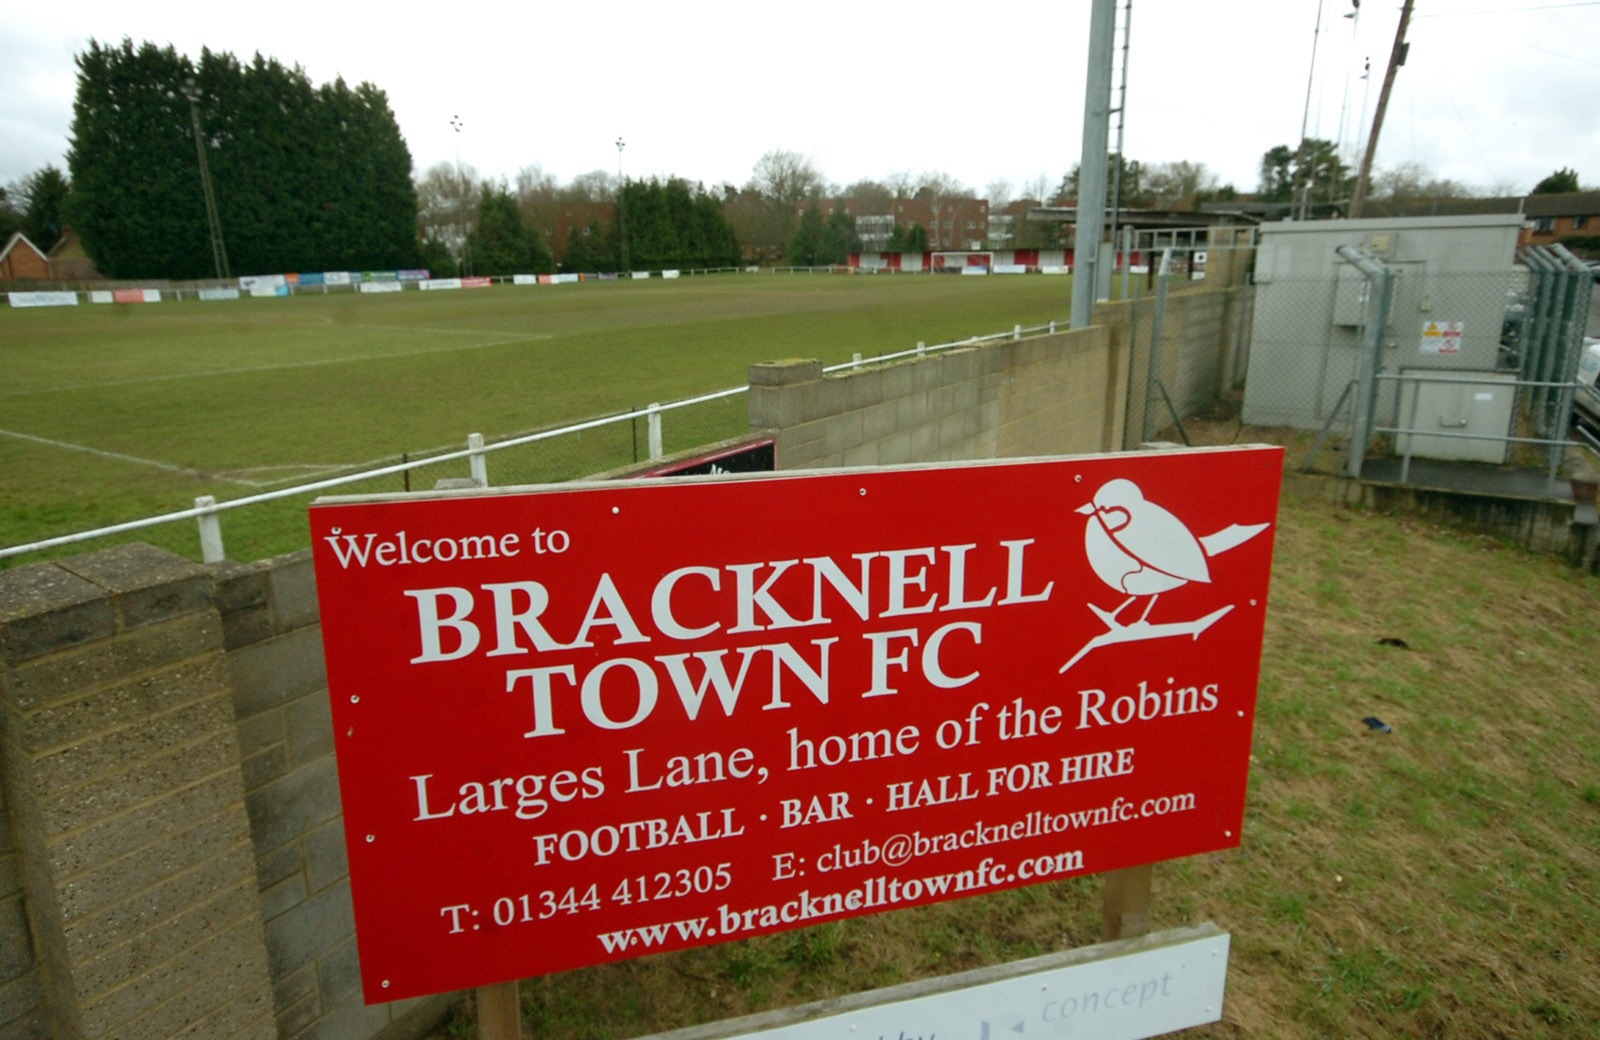 When will Larges Lane re-open for Bracknell Town FC?